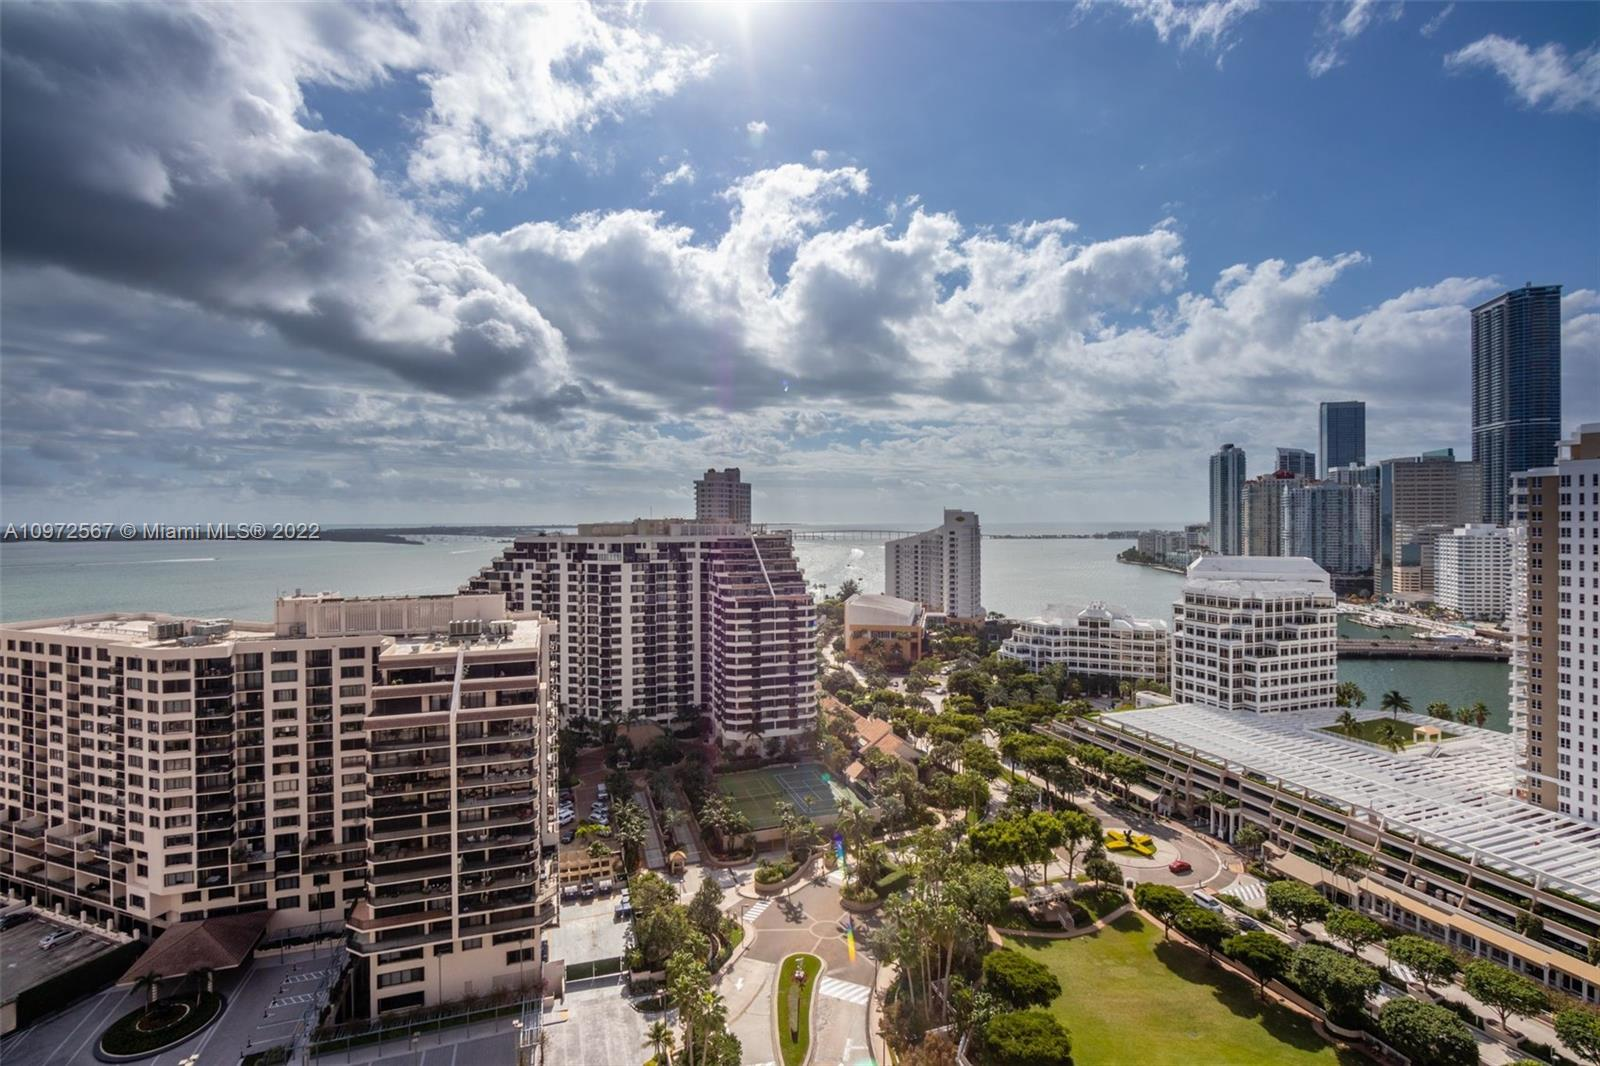 Great opportunity to buy an amazing 4 bedrooms unit and 5,5 bath, in the much desired Tequesta One Condominium in Brickell Key. Unit has spectacular views of Biscayne Bay and the Miami Skyline and feels like a home in the sky. Unit has a very well designed layout with spacious master bedroom and spacious  walk-in closets. This is a full service building with excellent amenities that include 24 hour security. Unit comes with 2 conveniently located parking spaces. Near Mary Brickell Village & Brickell City Center.